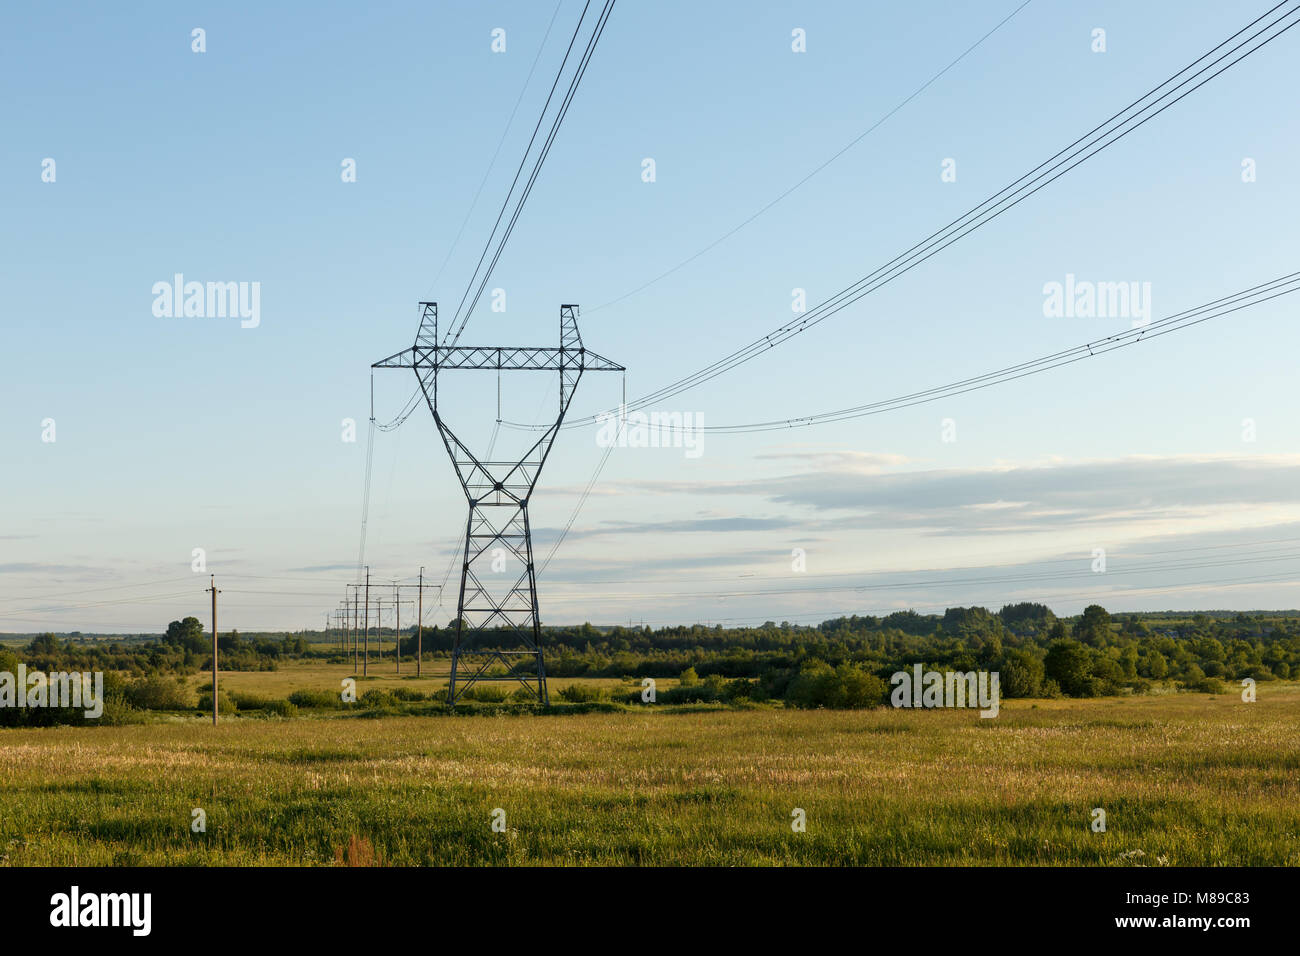 support of high-voltage power line in the field. - Stock Image